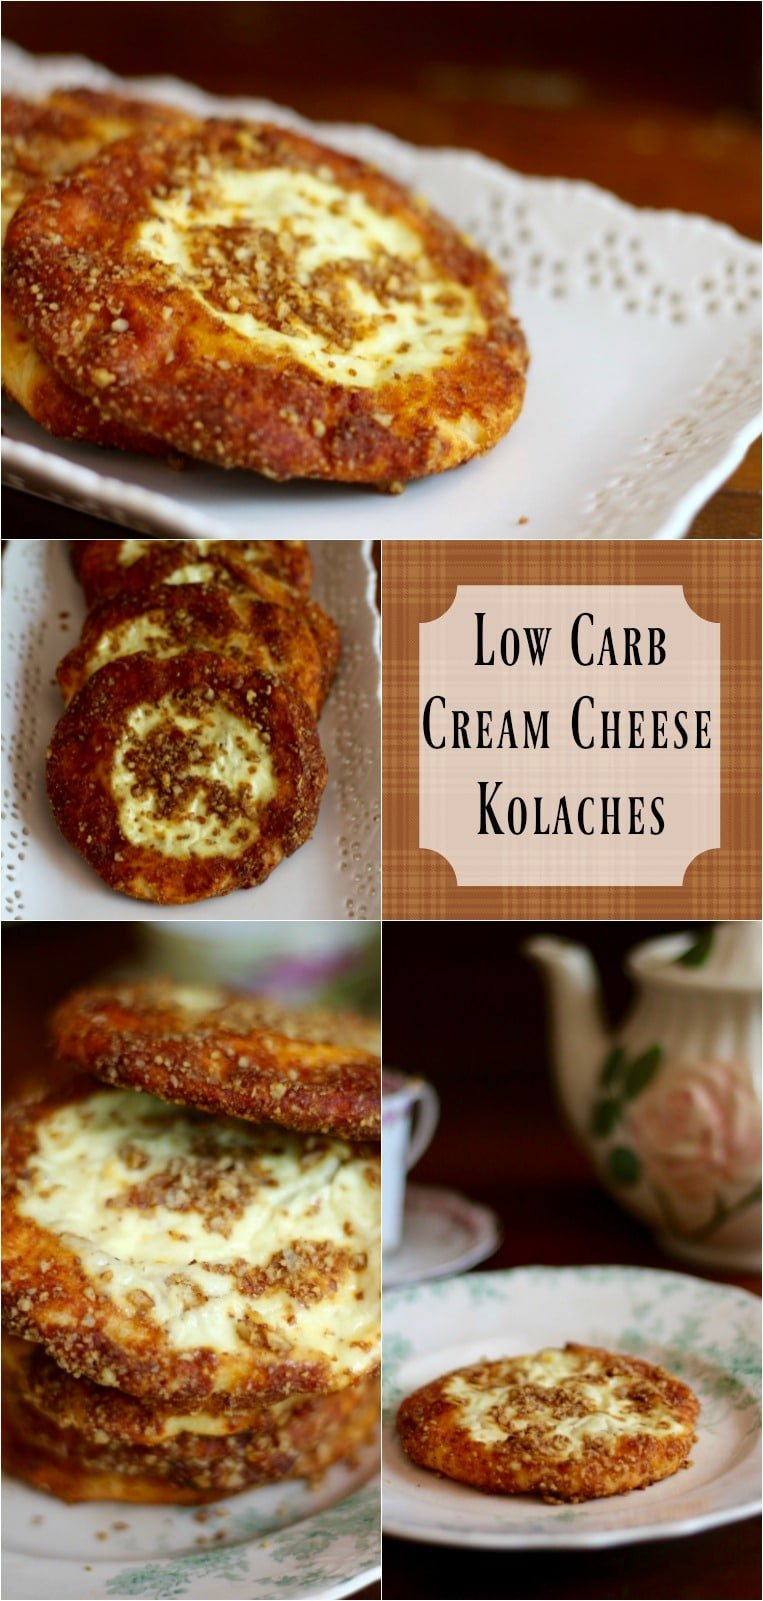 Low carb cream cheese kolaches have just 2.8 net carbs and they are gluten free! From Lowcarb-ology.com